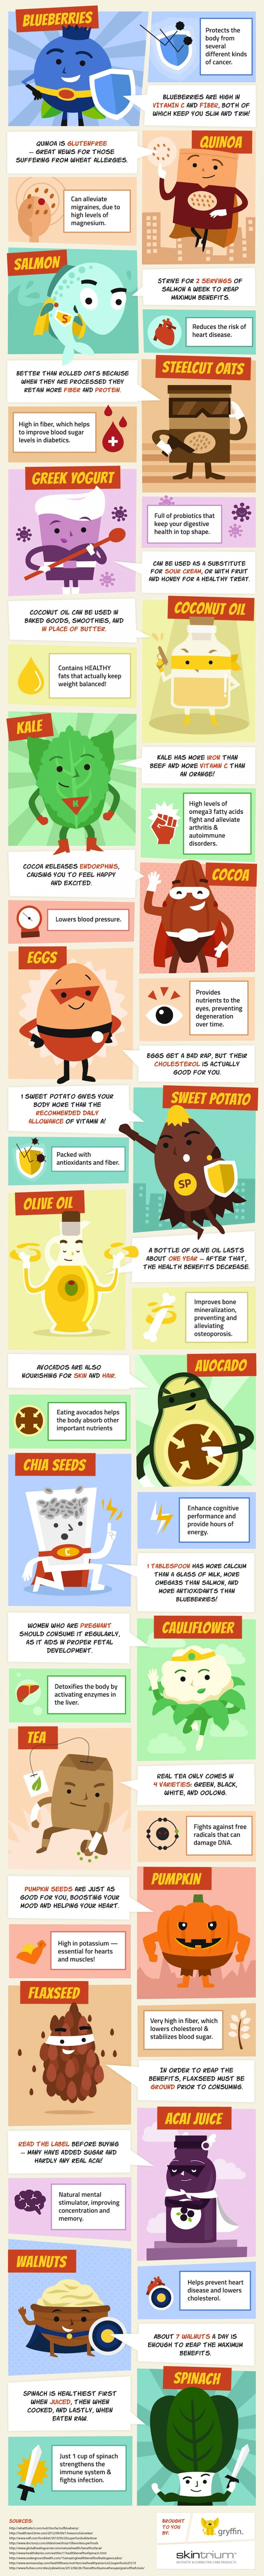 Superfoods Super Guide